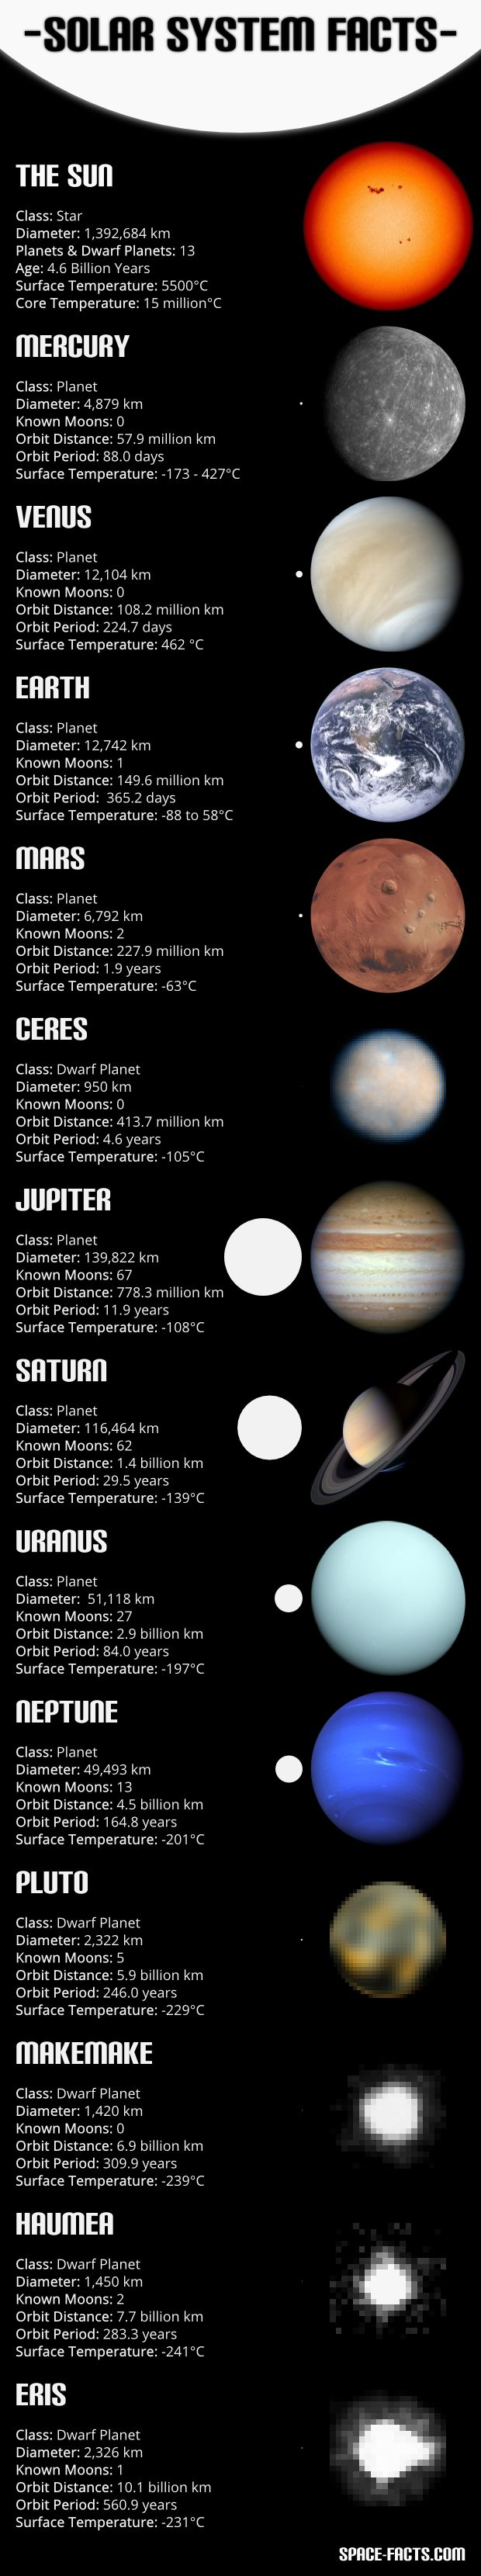 379 best Space, Solar system,Planets images on Pinterest ...